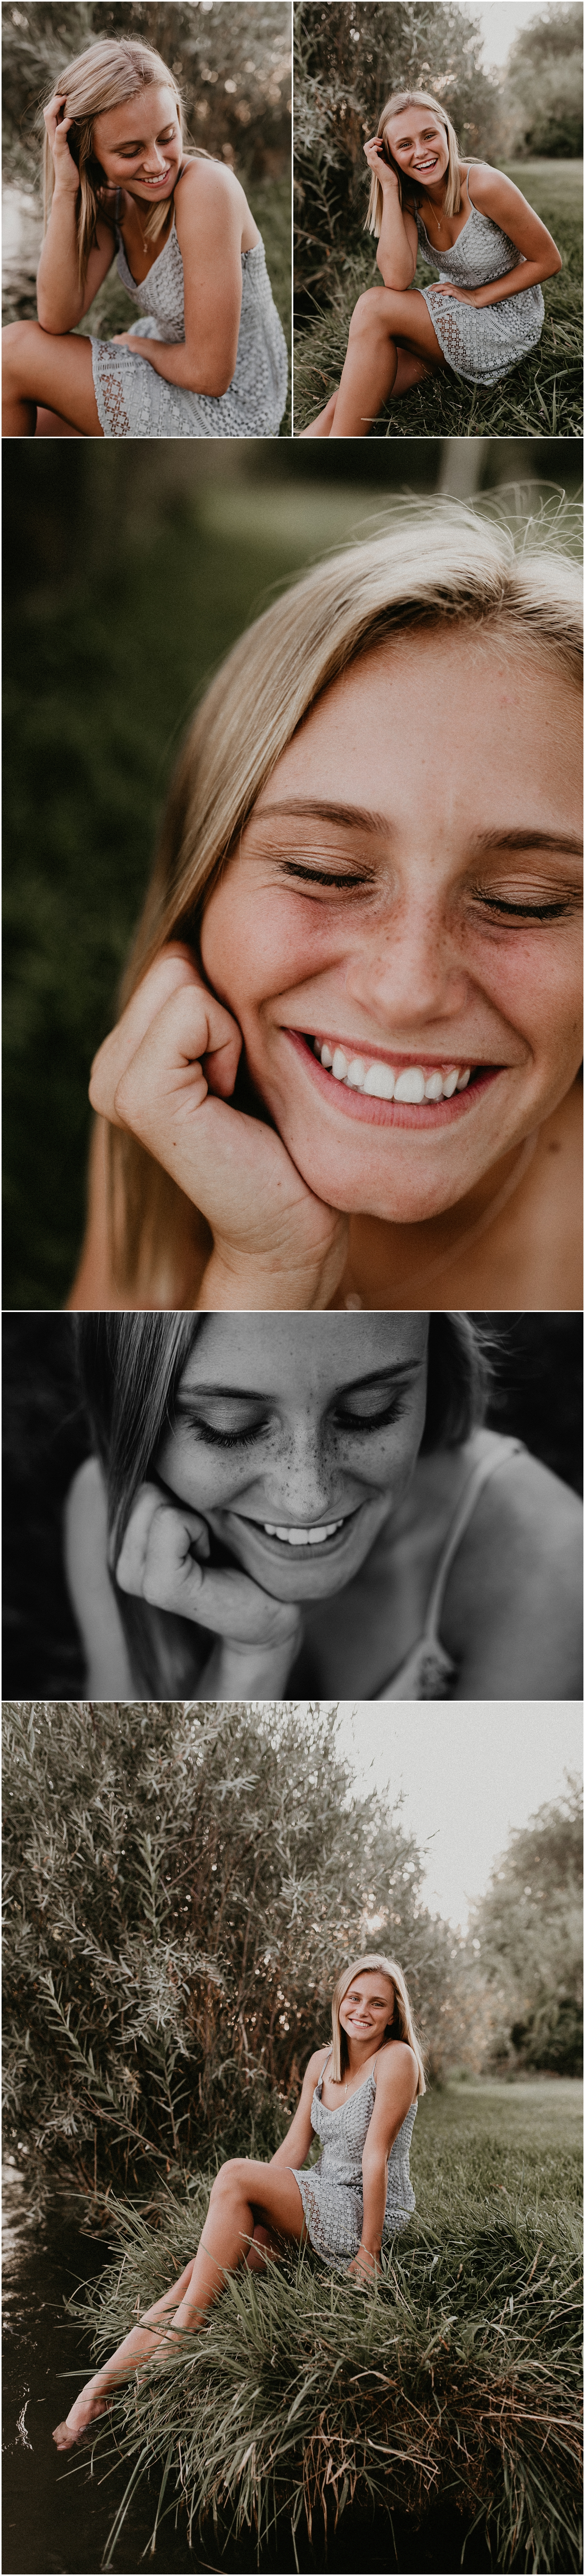 Boise Senior Photographer Makayla Madden Photography Kuna River Summer Senior Pictures Dress Outfit Ideas Beautiful Class of 2018 Freckles Laughter Idaho Photographer